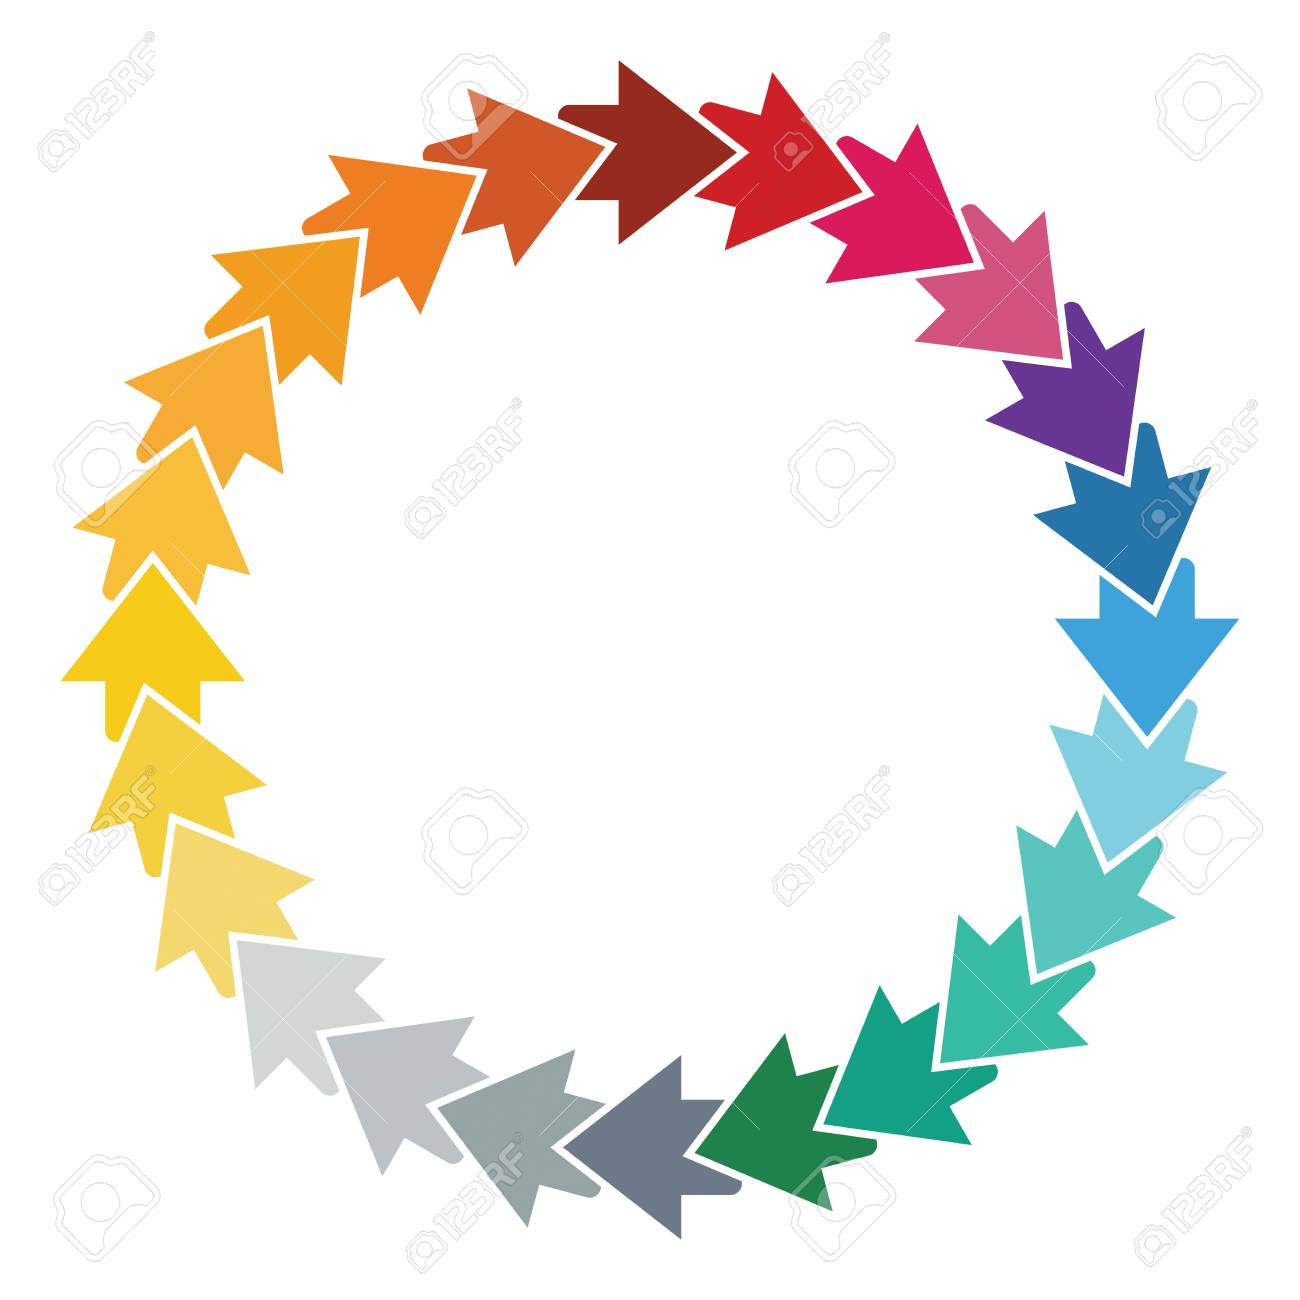 Editable Color Wheel Template With Arrows And Copy Paste Area